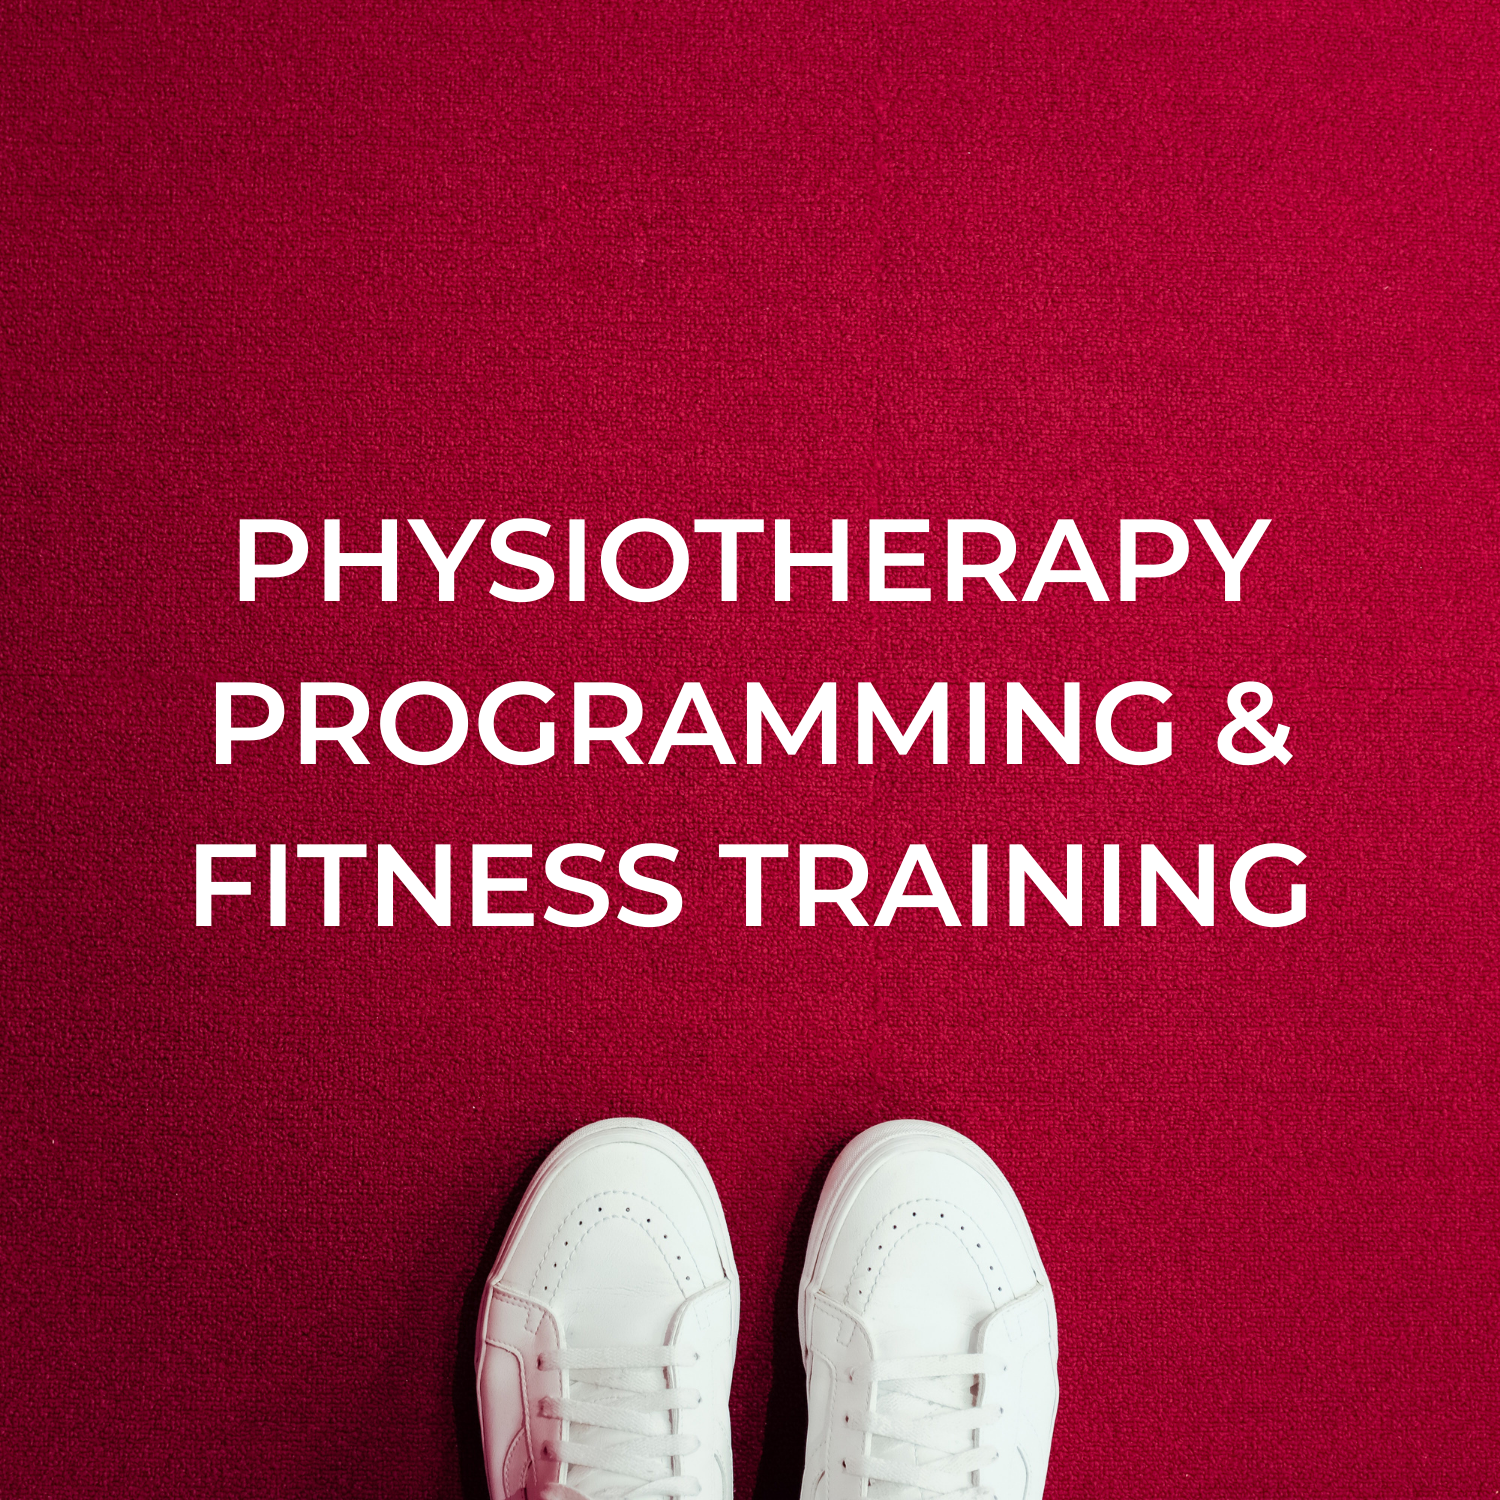 Physiotherapy Programming and Fitness Training